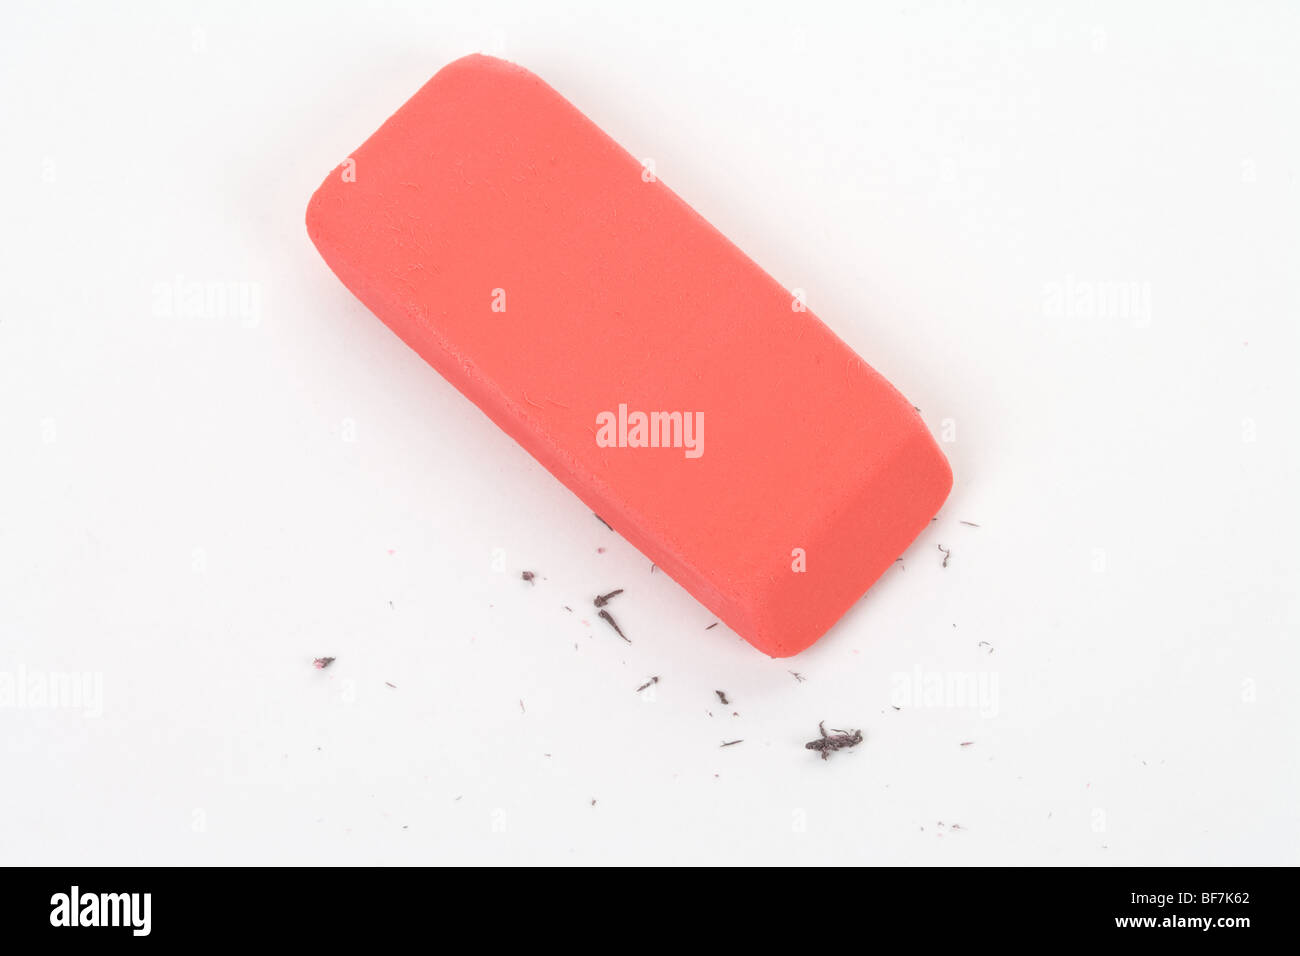 Eraser close up shot, concept of making change - Stock Image